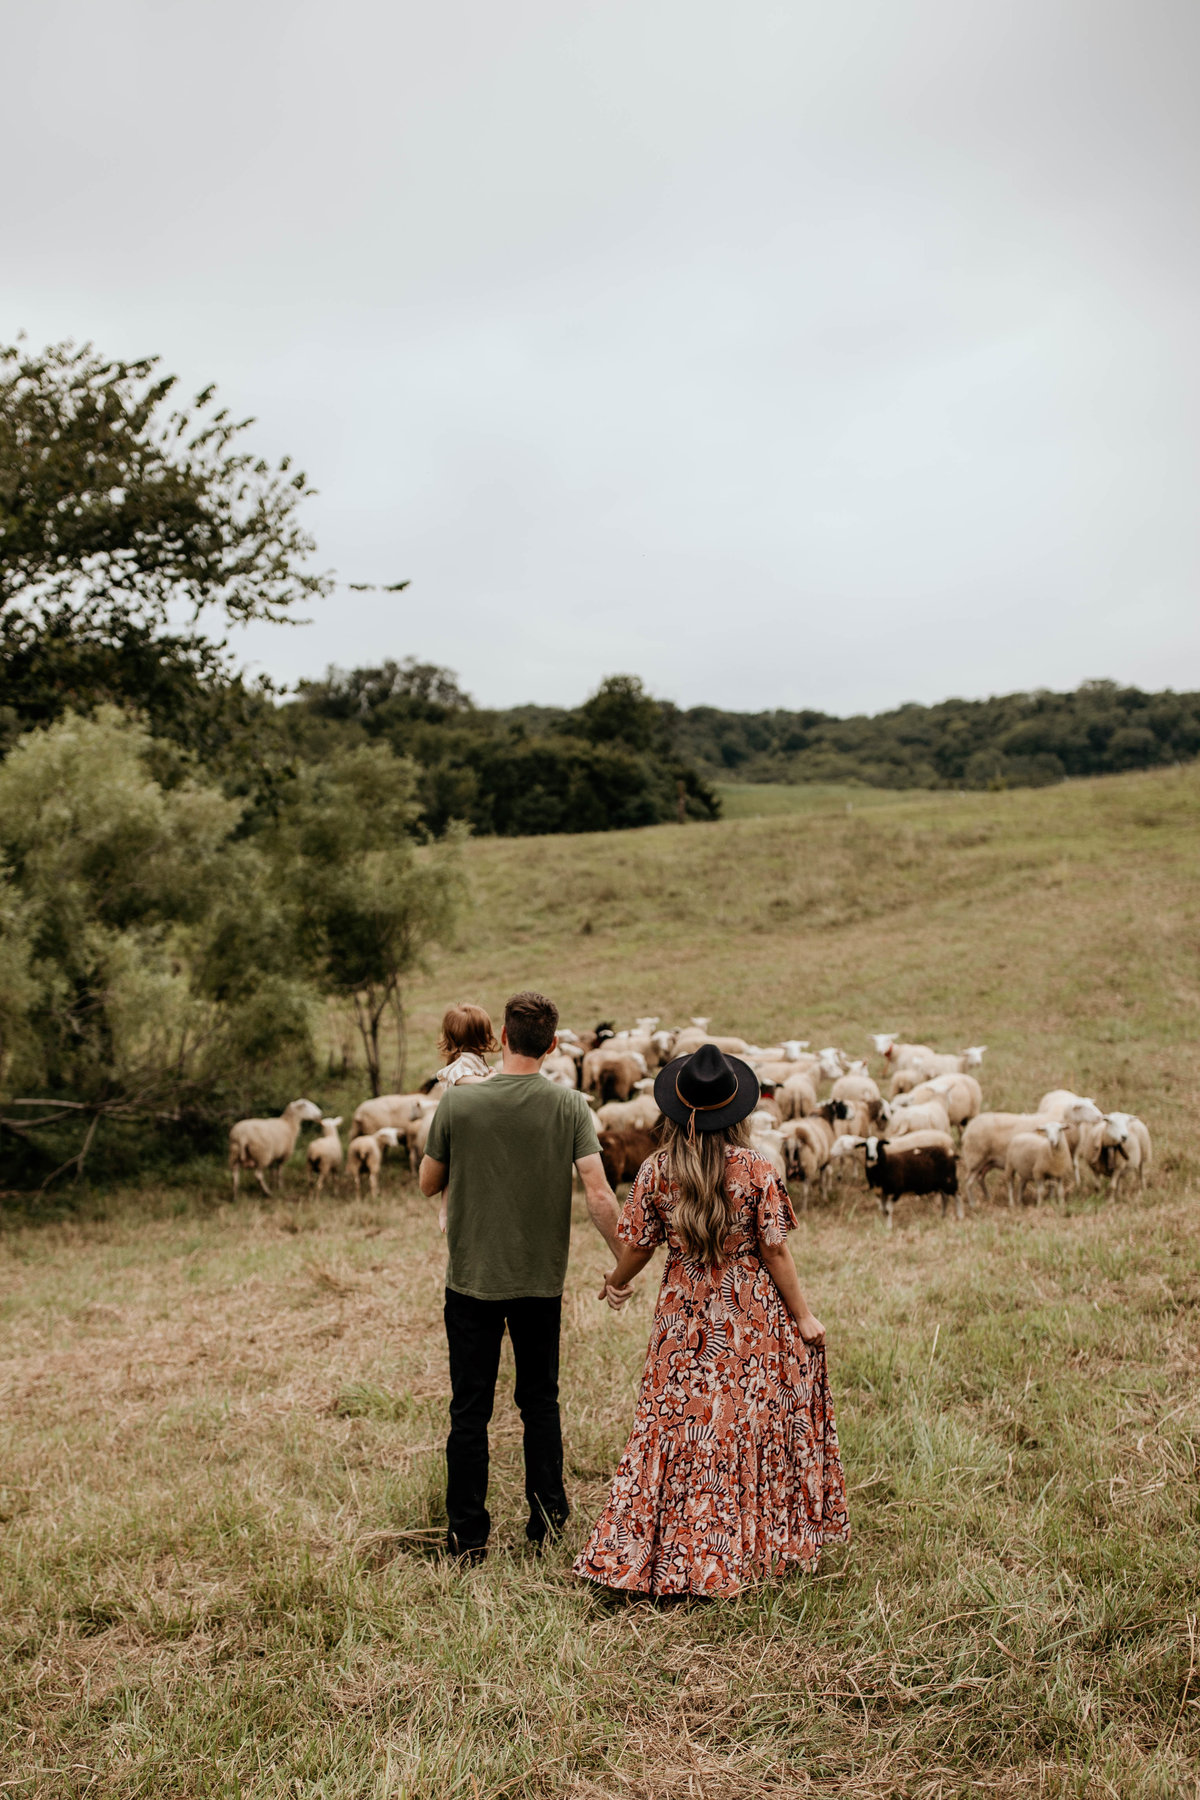 Andrea Corwin Photography Family Photographer Wichita Photographer Kansas - Sheep Farm (1 of 41)